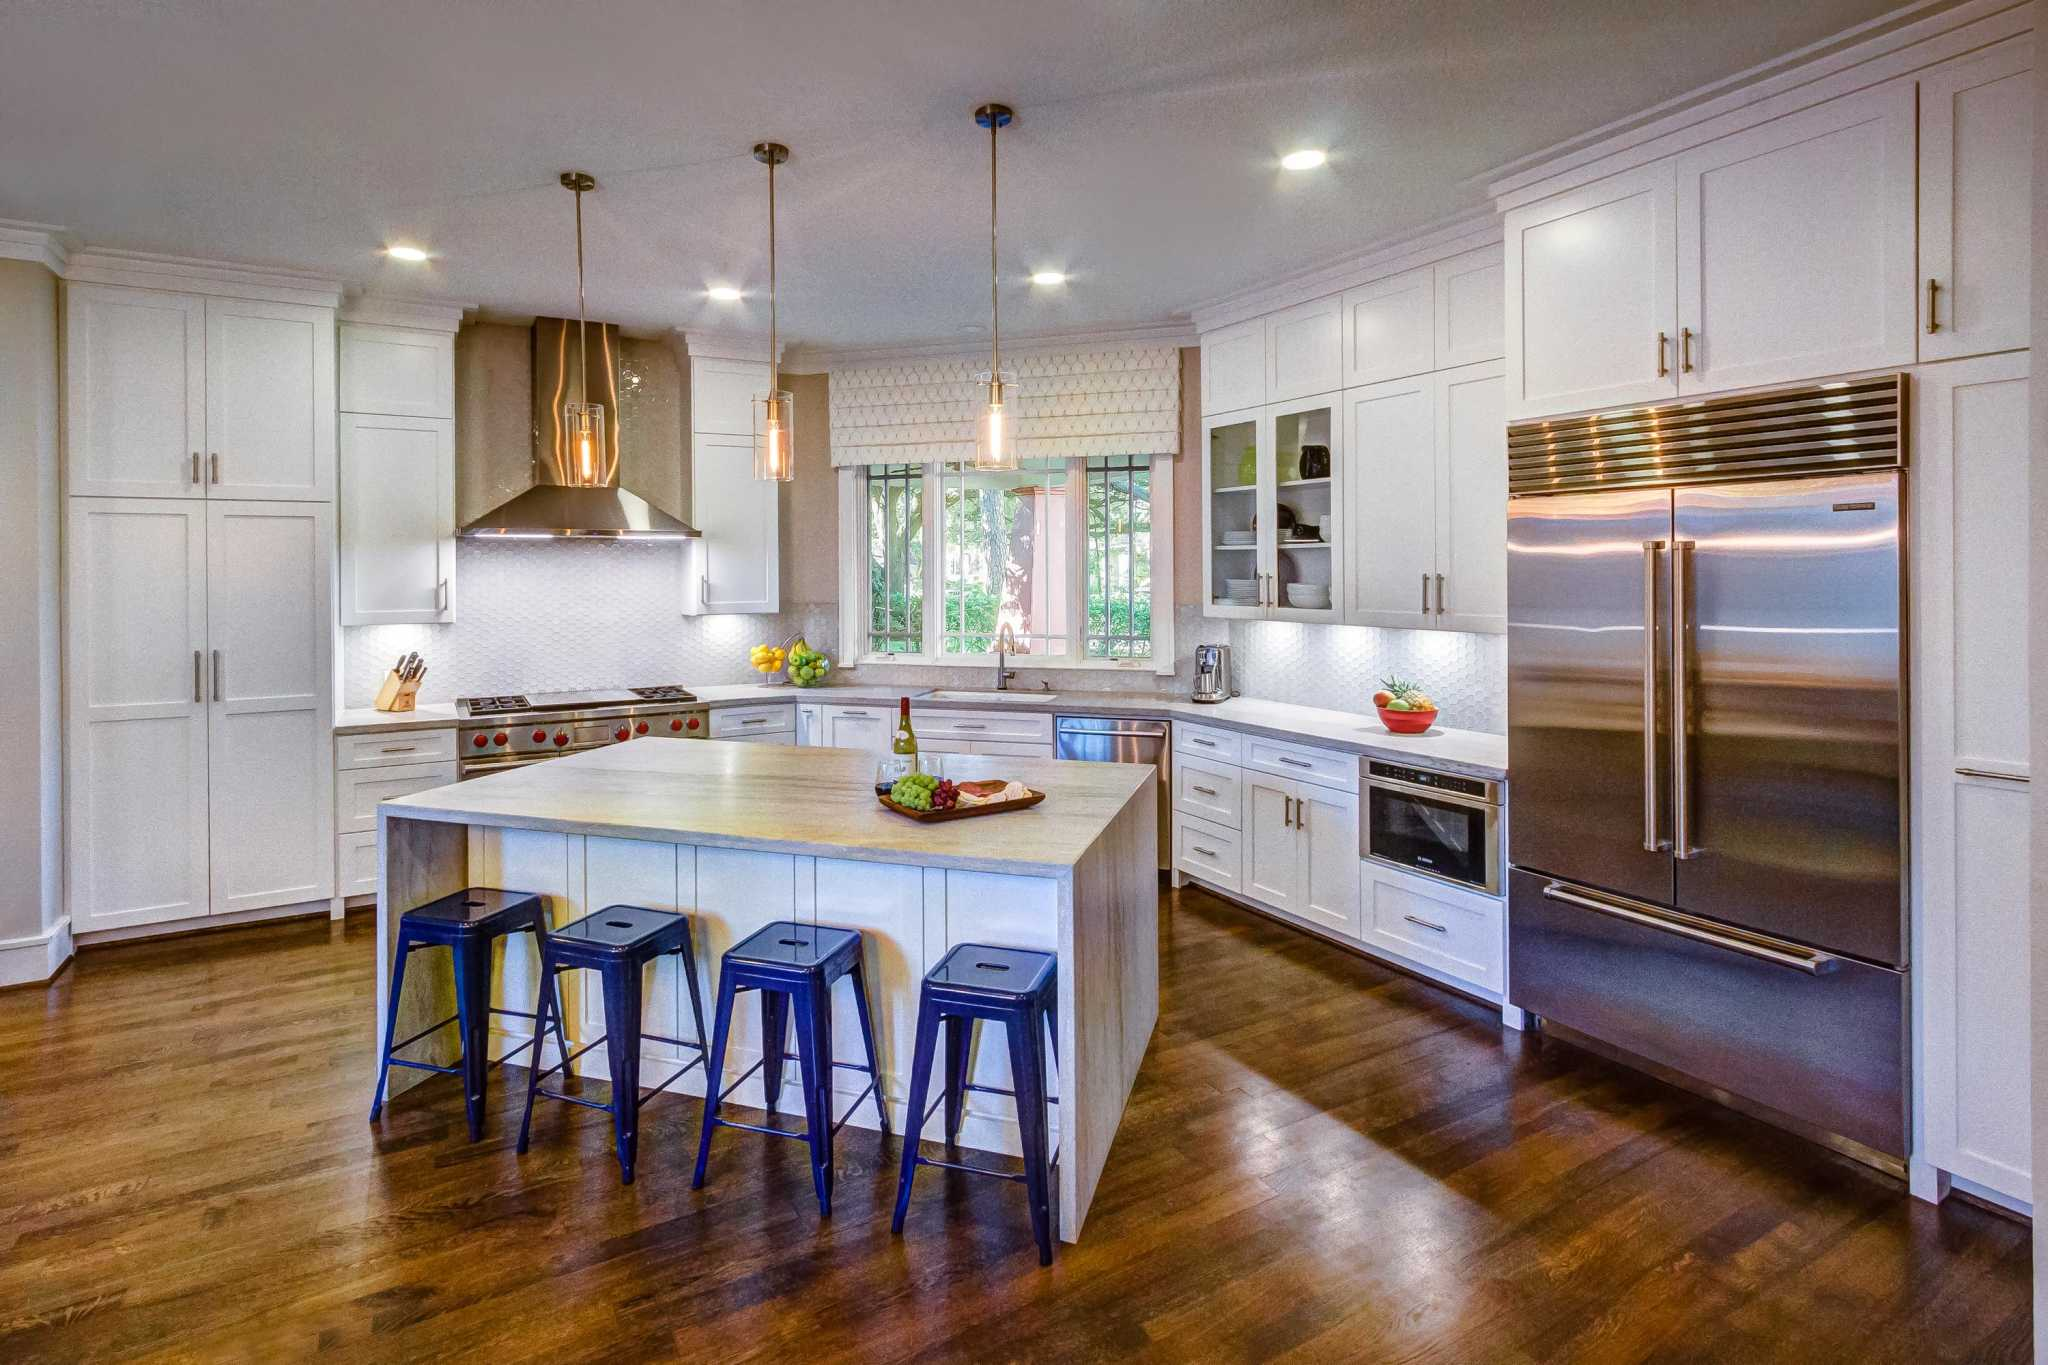 Dated to dazzling: Remodel spurs bigger ideas in Boulevard Oaks home